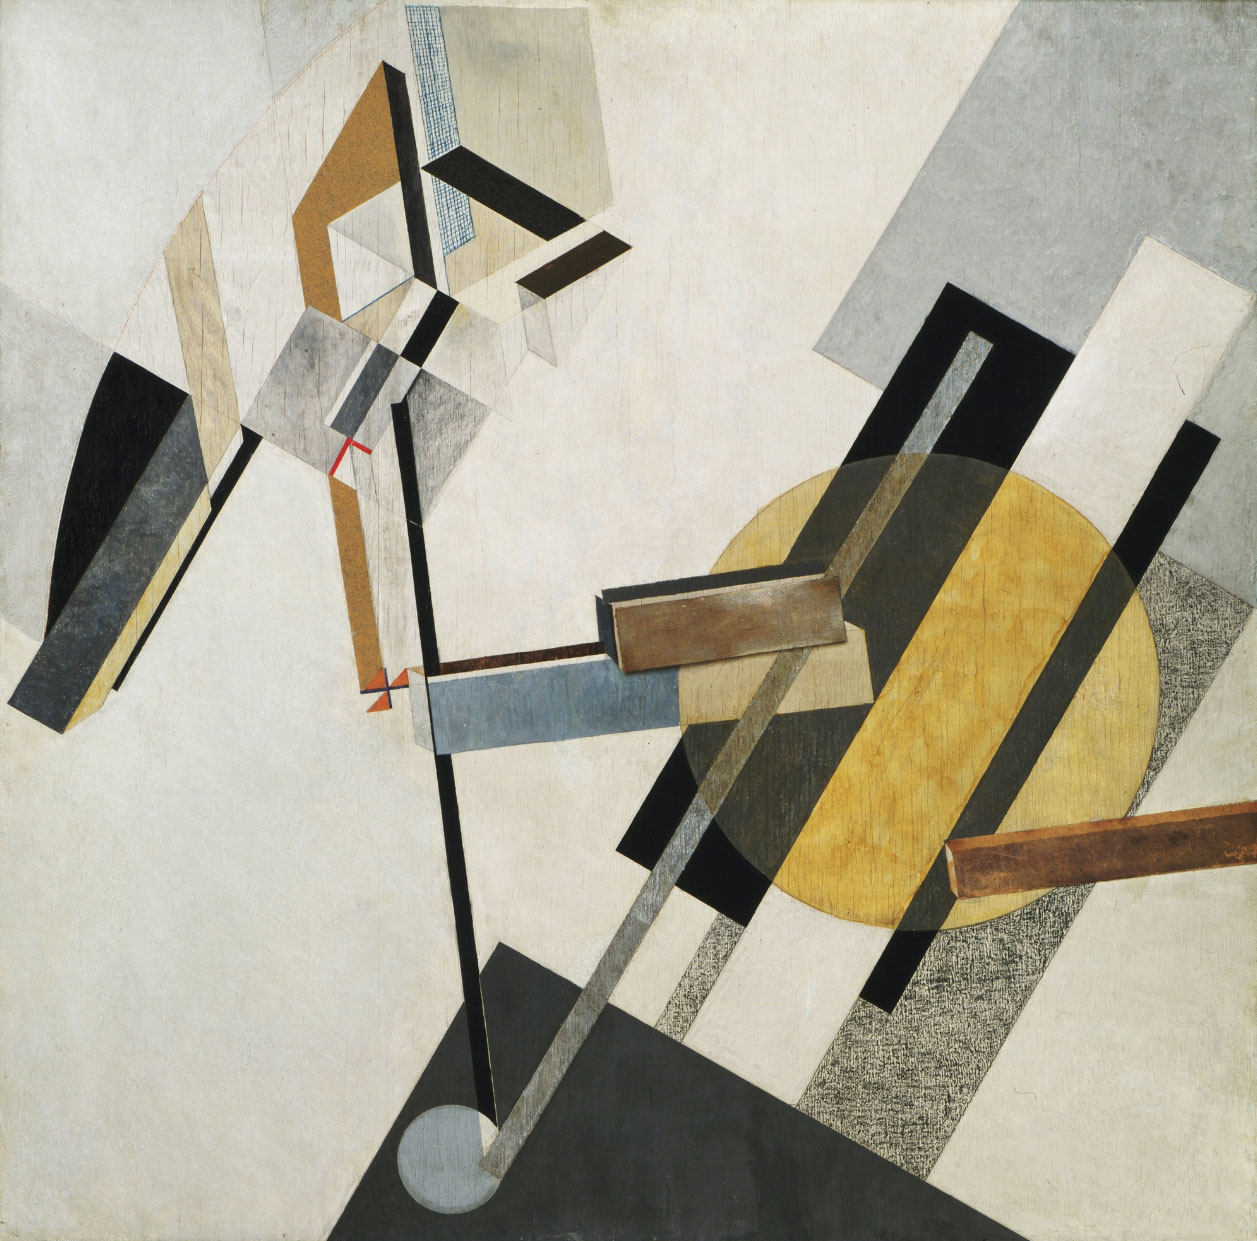 "El Lissitzky, Proun 19D(1920 or 1921) On view at The Museum of Modern Art, Floor 5, Collection Galleries.  Medium: Gesso, oil, varnish, crayon, colored papers, sandpaper, graph paper, cardboard, metallic paint, and metal foil on plywoodDimensions: 38 3/8 x 38 1/4"" (97.5 x 97.2 cm)Credit: Katherine S. Dreier BequestCopyright © 2018 Artists Rights Society (ARS), New York / VG Bild-Kunst, Bonn. source MOMA.'for illustrative purposes only'"